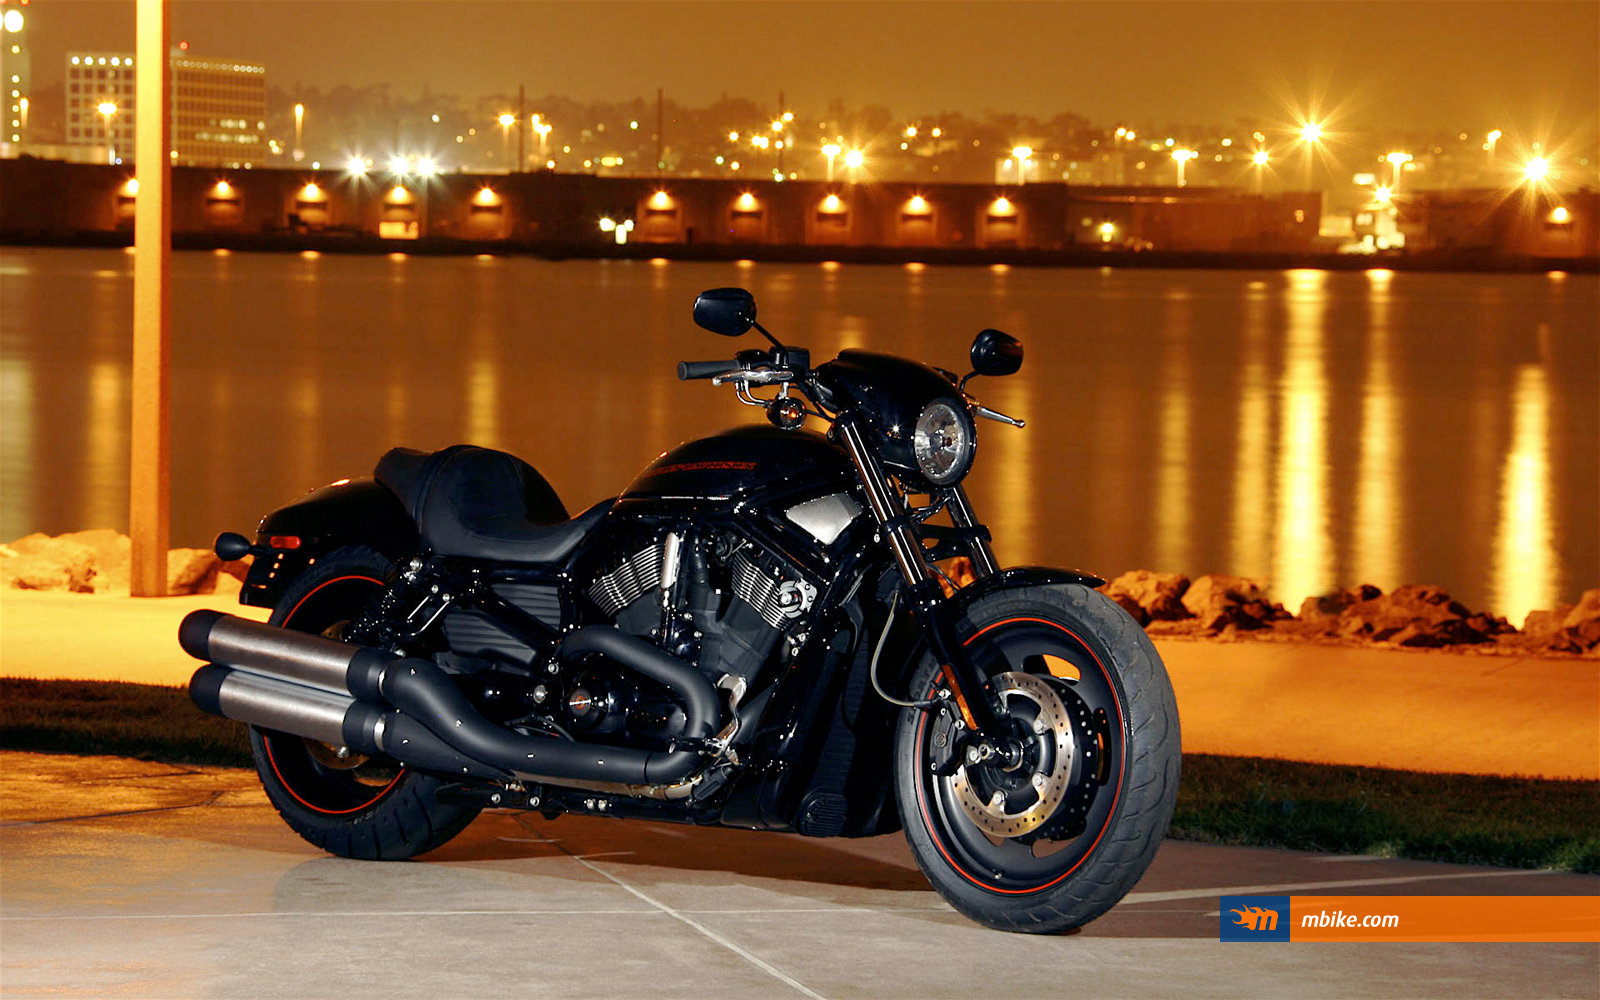 2008 Harley Davidson Vrscdx Night Rod Special Wallpaper Mbike Com